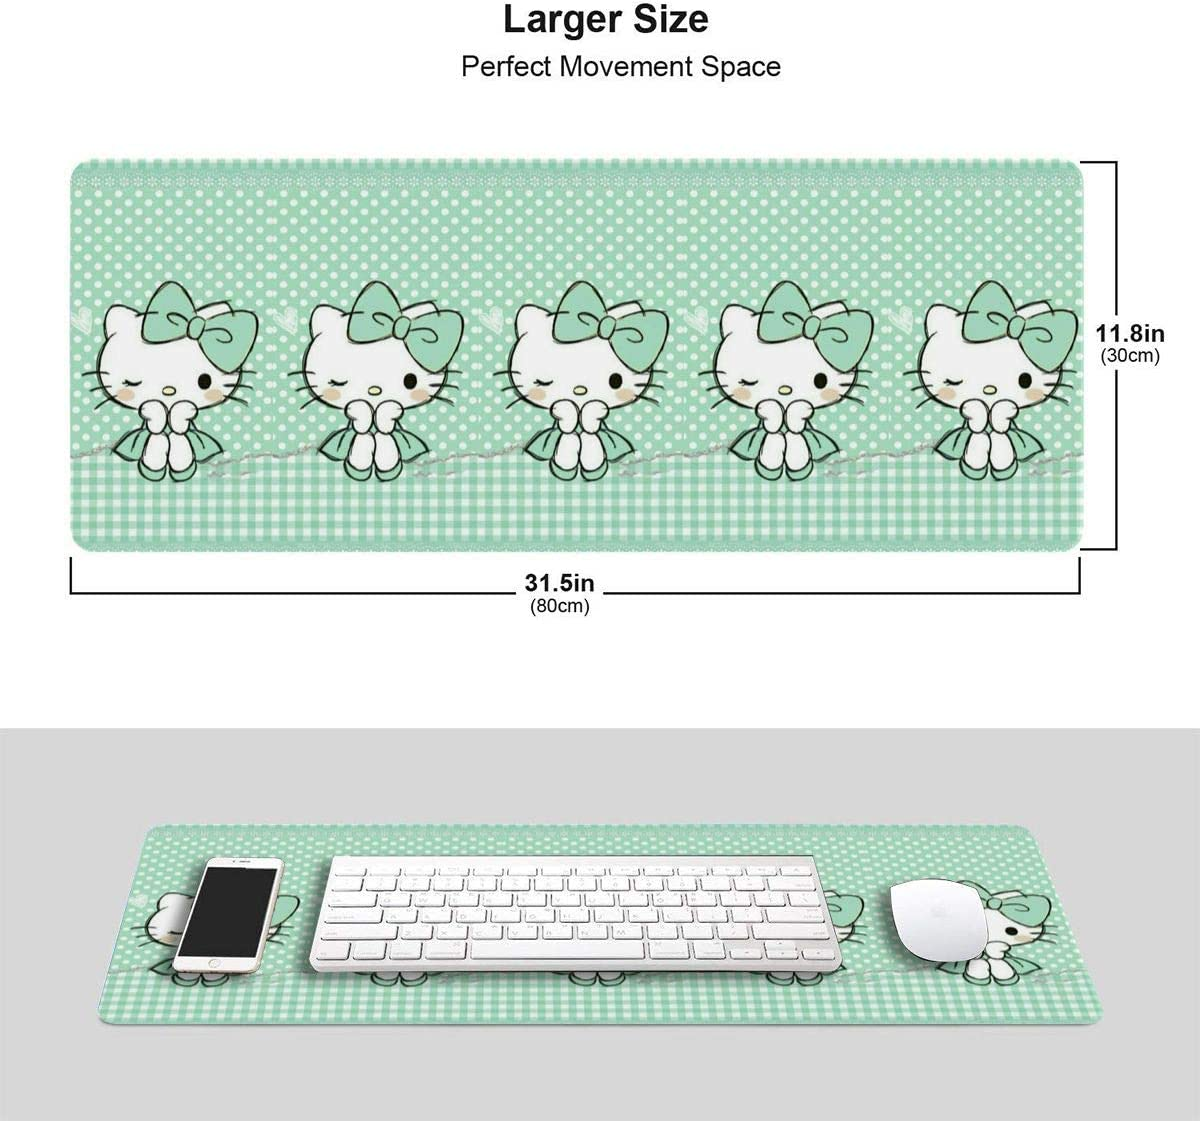 Large Gaming Mouse Pad Hello Kitty Green Dot Extended Desk Pad for Computers Thick Keyboard Mouse Mat Non-Slip Rubber Base Mousepad 11.8 X 31.5 X 0.12inch